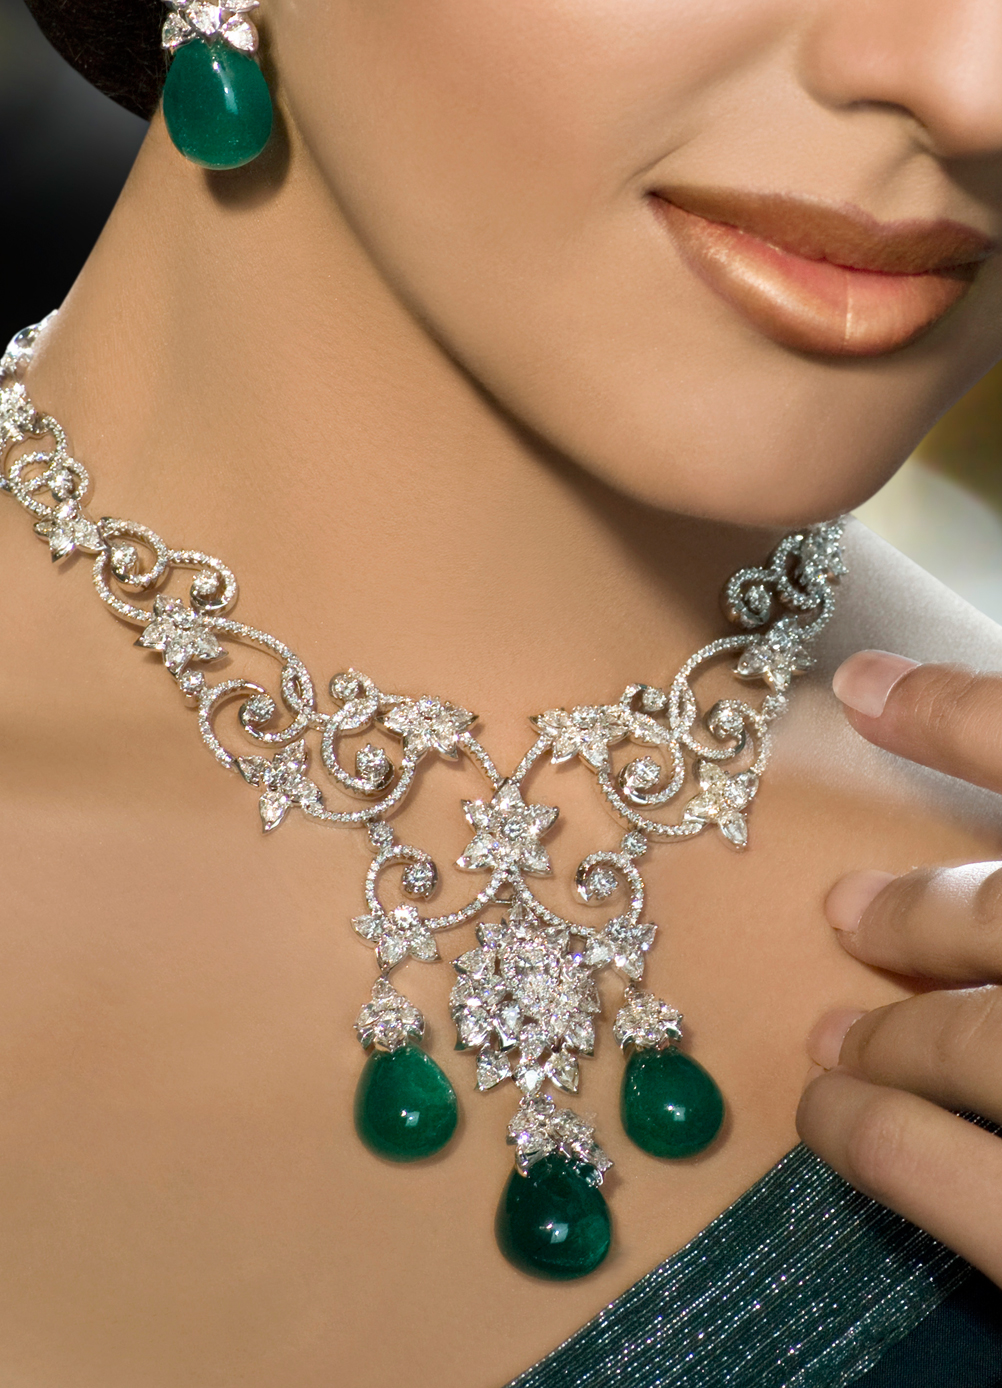 How to complement your outfit with large jewelry beads and pieces how to complement your outfit with large jewelry aloadofball Gallery